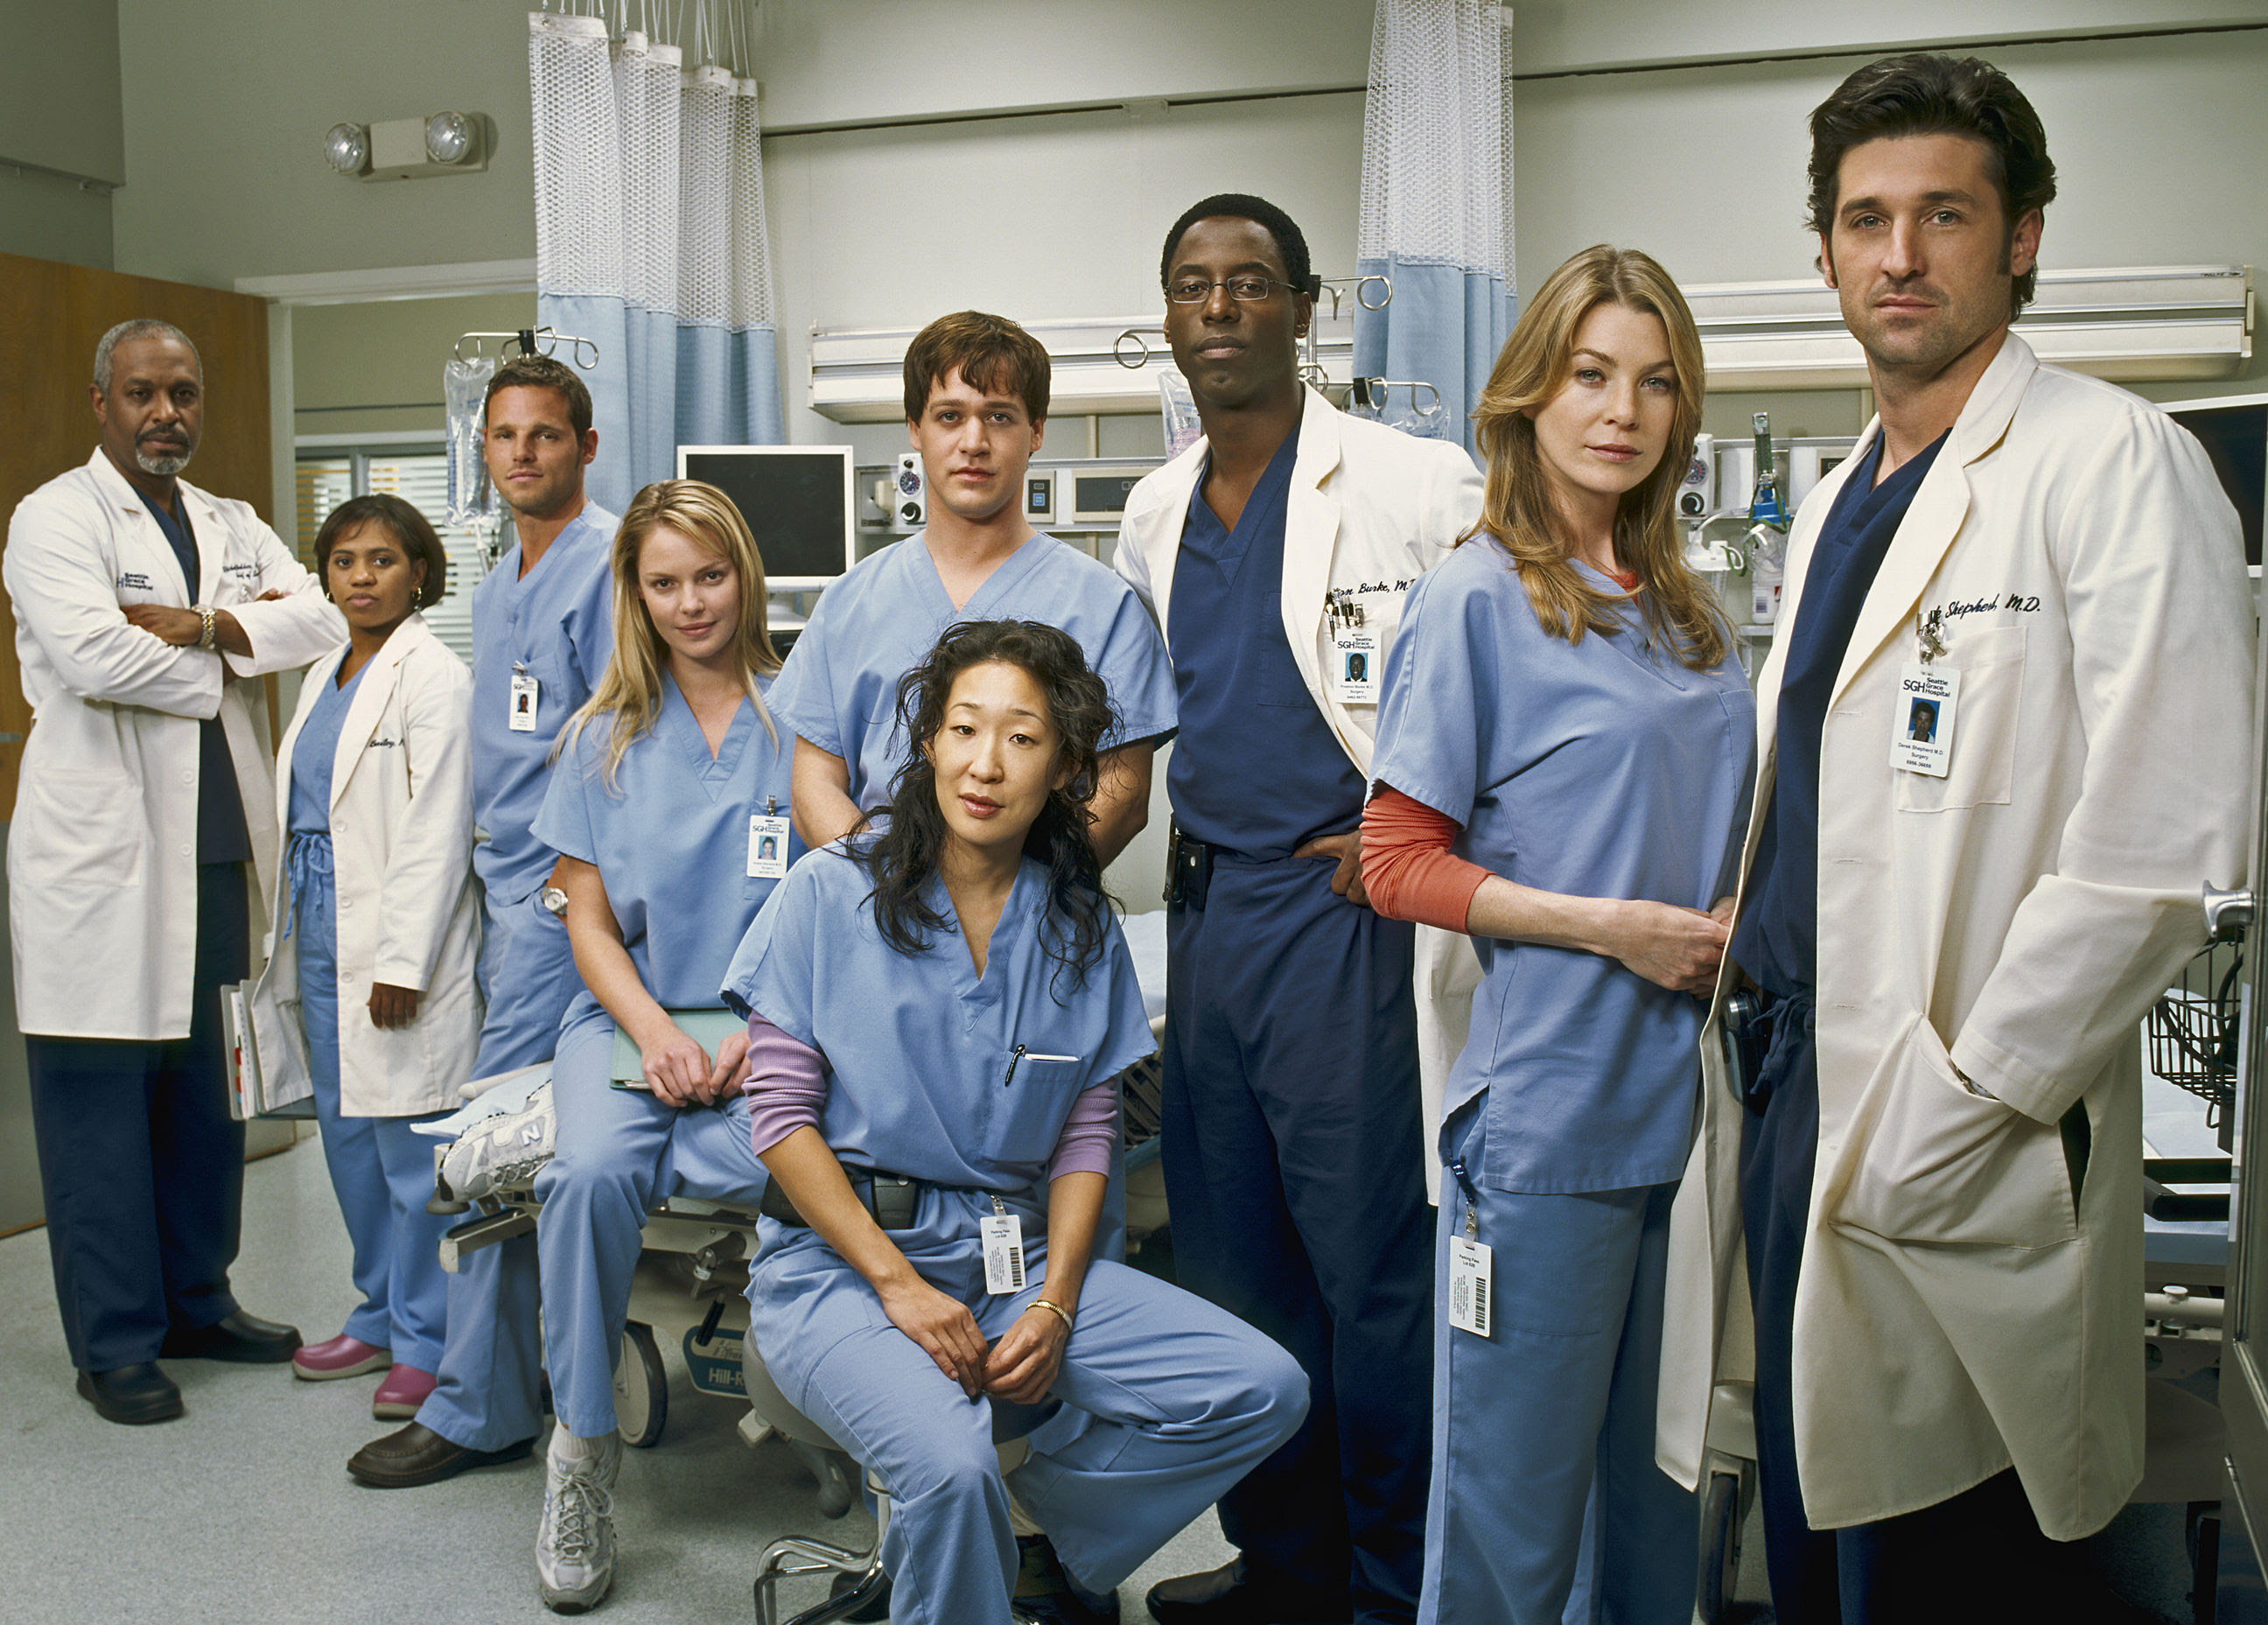 ... Open Letter to Shonda Rhimes, RE: Grey's Anatomy | The Daily Sampler